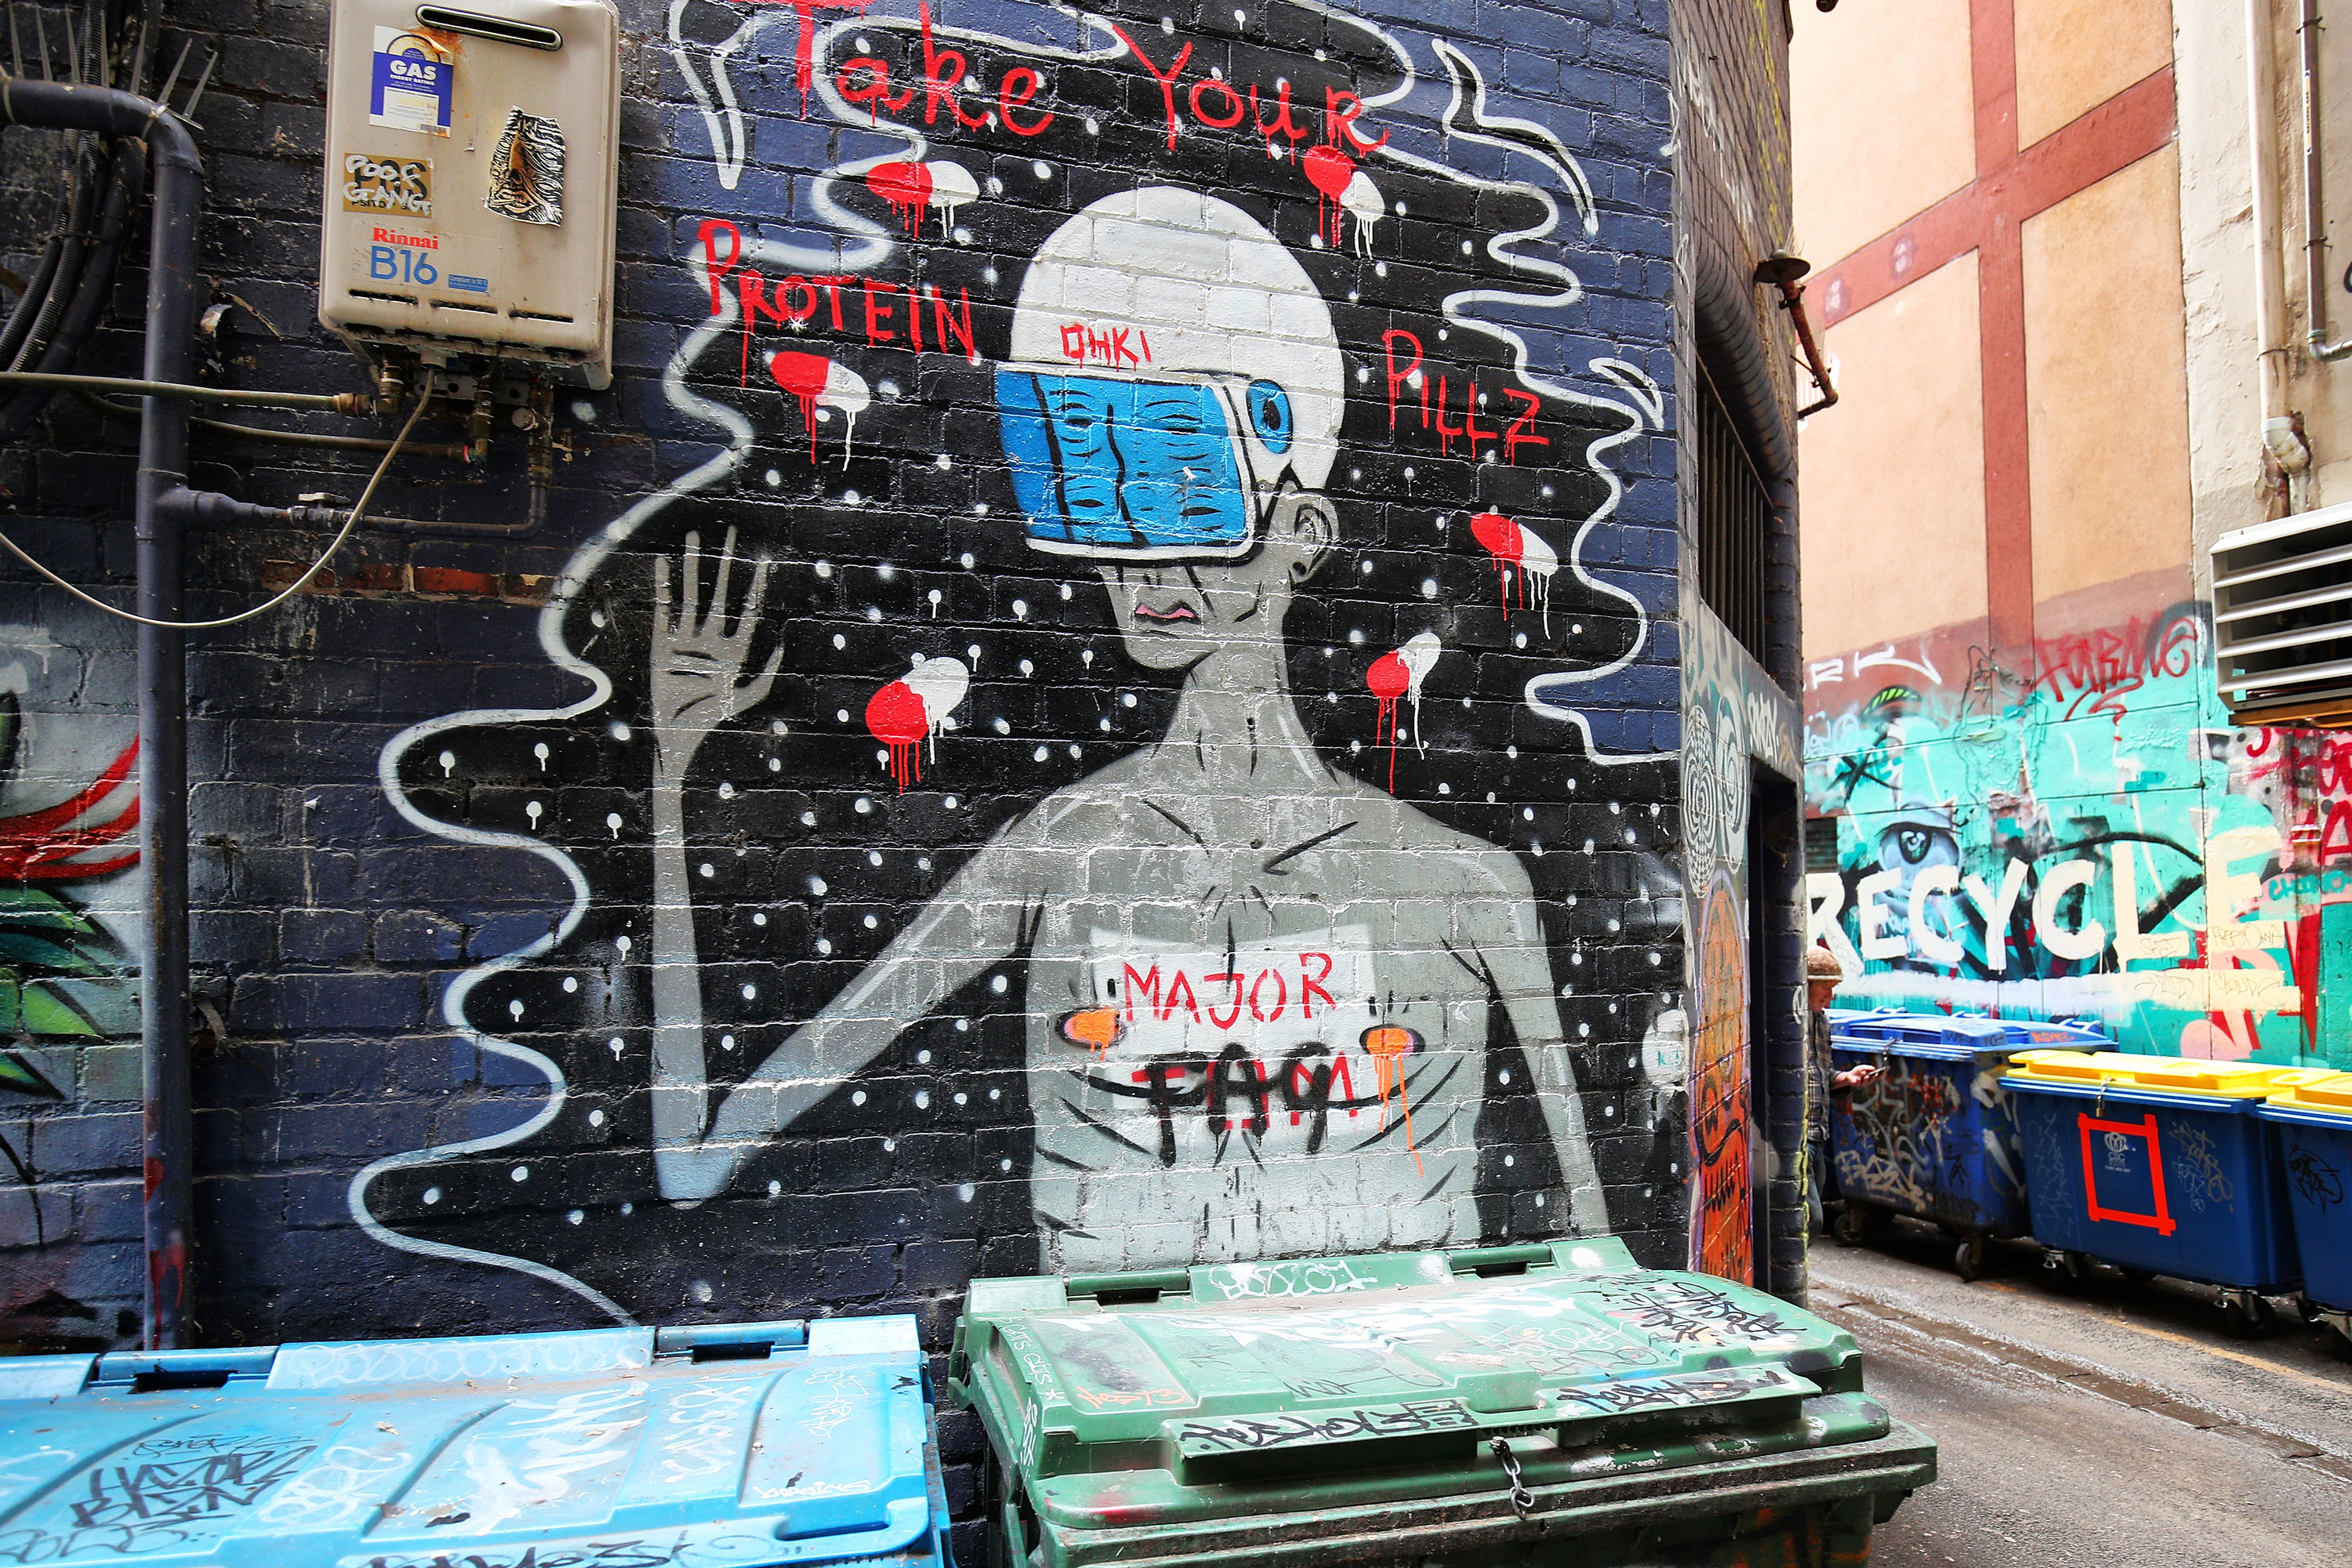 Where to find Melbourne's best street art